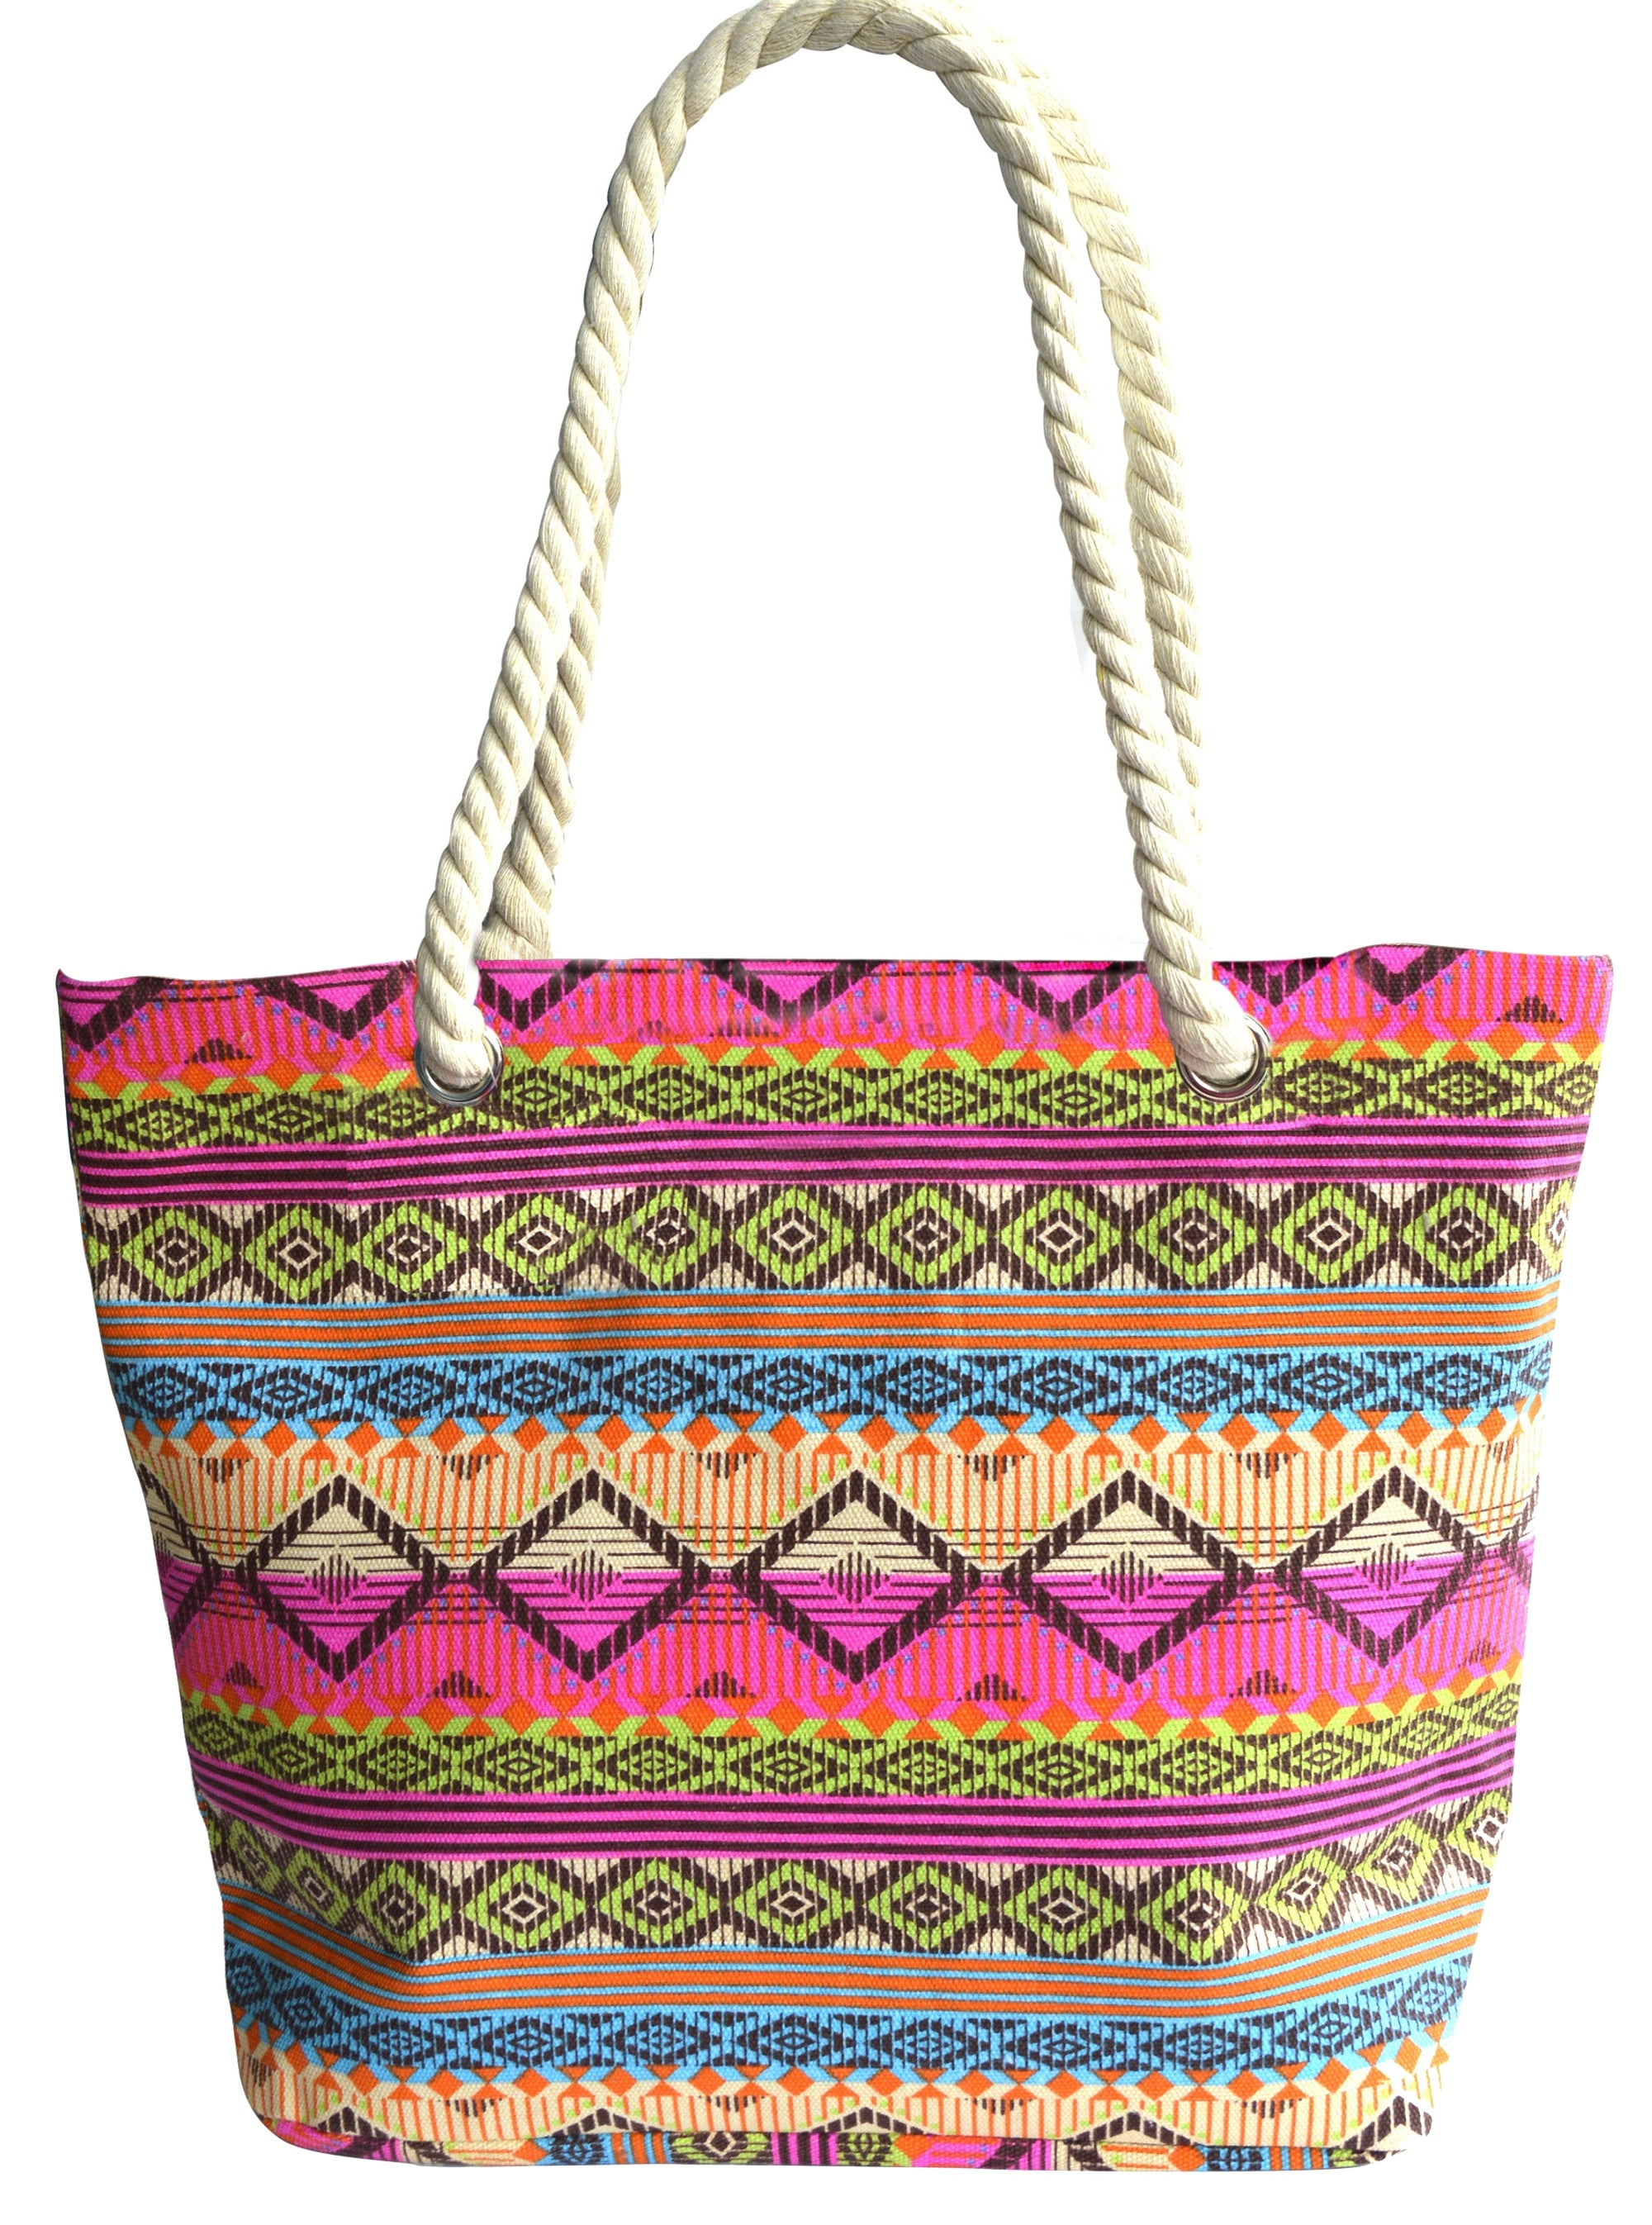 OCTAVE Summer Beach Tote Handbags Collection - Aztec Design